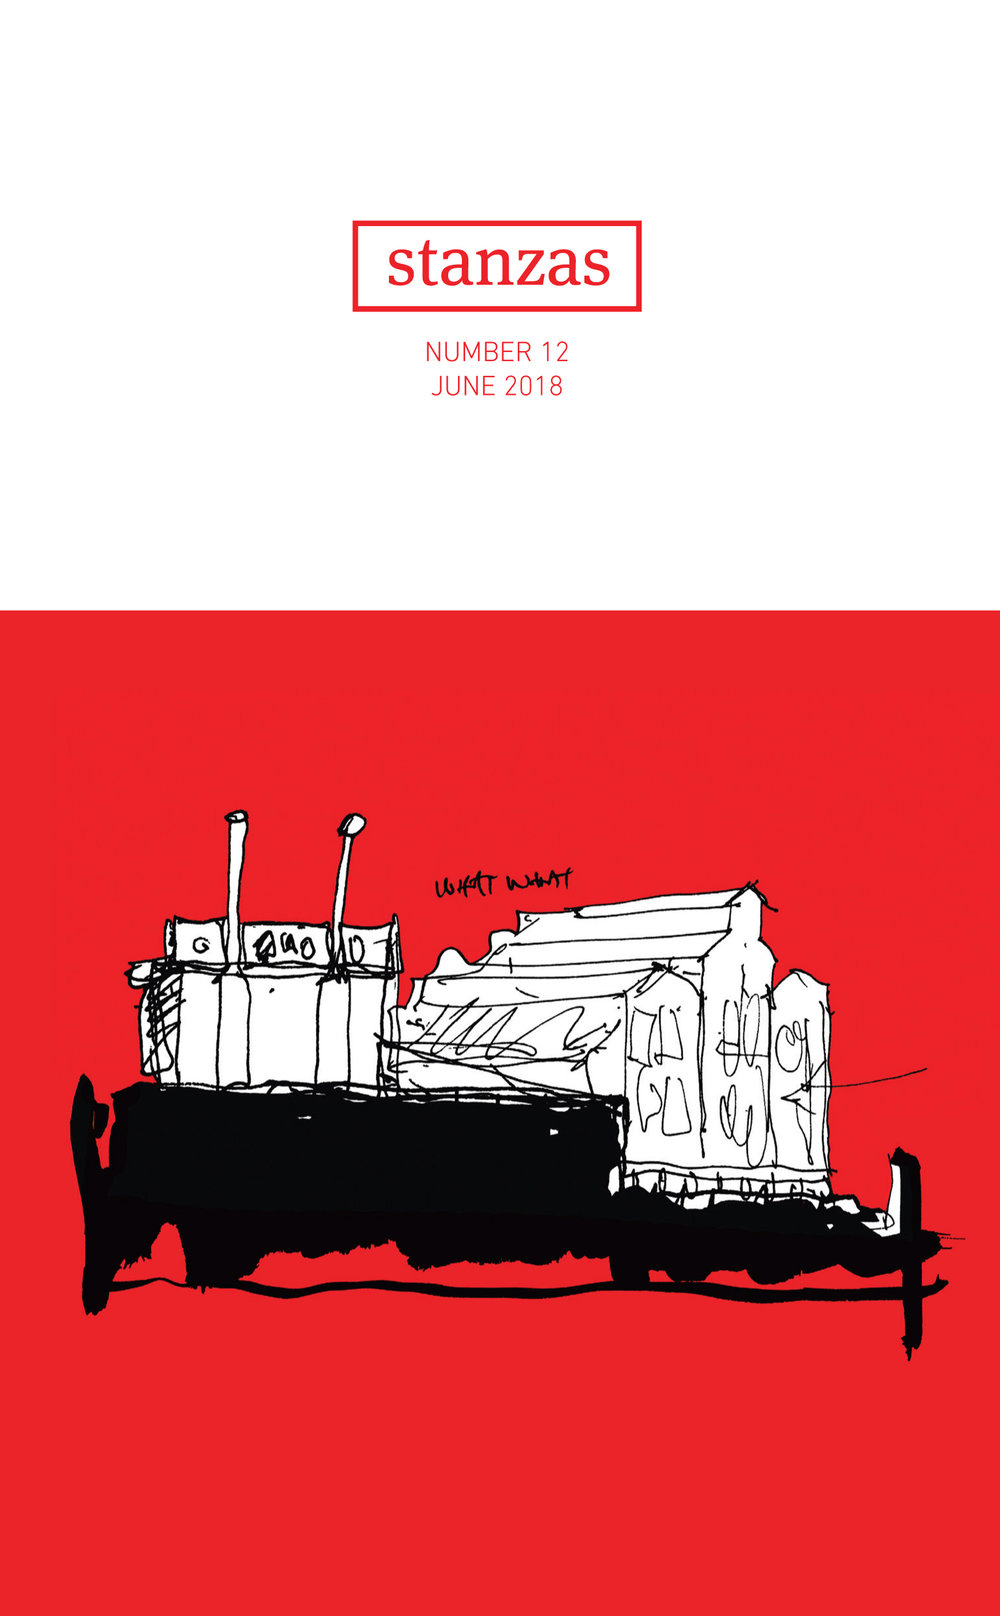 Stanzas July 2018   I am pleased to announce that my illustration entitled, 'Fable' (depicting the Turbine Hall of Newown, Johannesburg) has been featured on the front cover of 'Stanzas' - a poetry anthology produced in South Africa.  Special thanks go to:  Publisher:  African Sun Press   Editors: Patricia Schonstein and Douglas Reid Skinner Designer:  Gaelen Pinnock